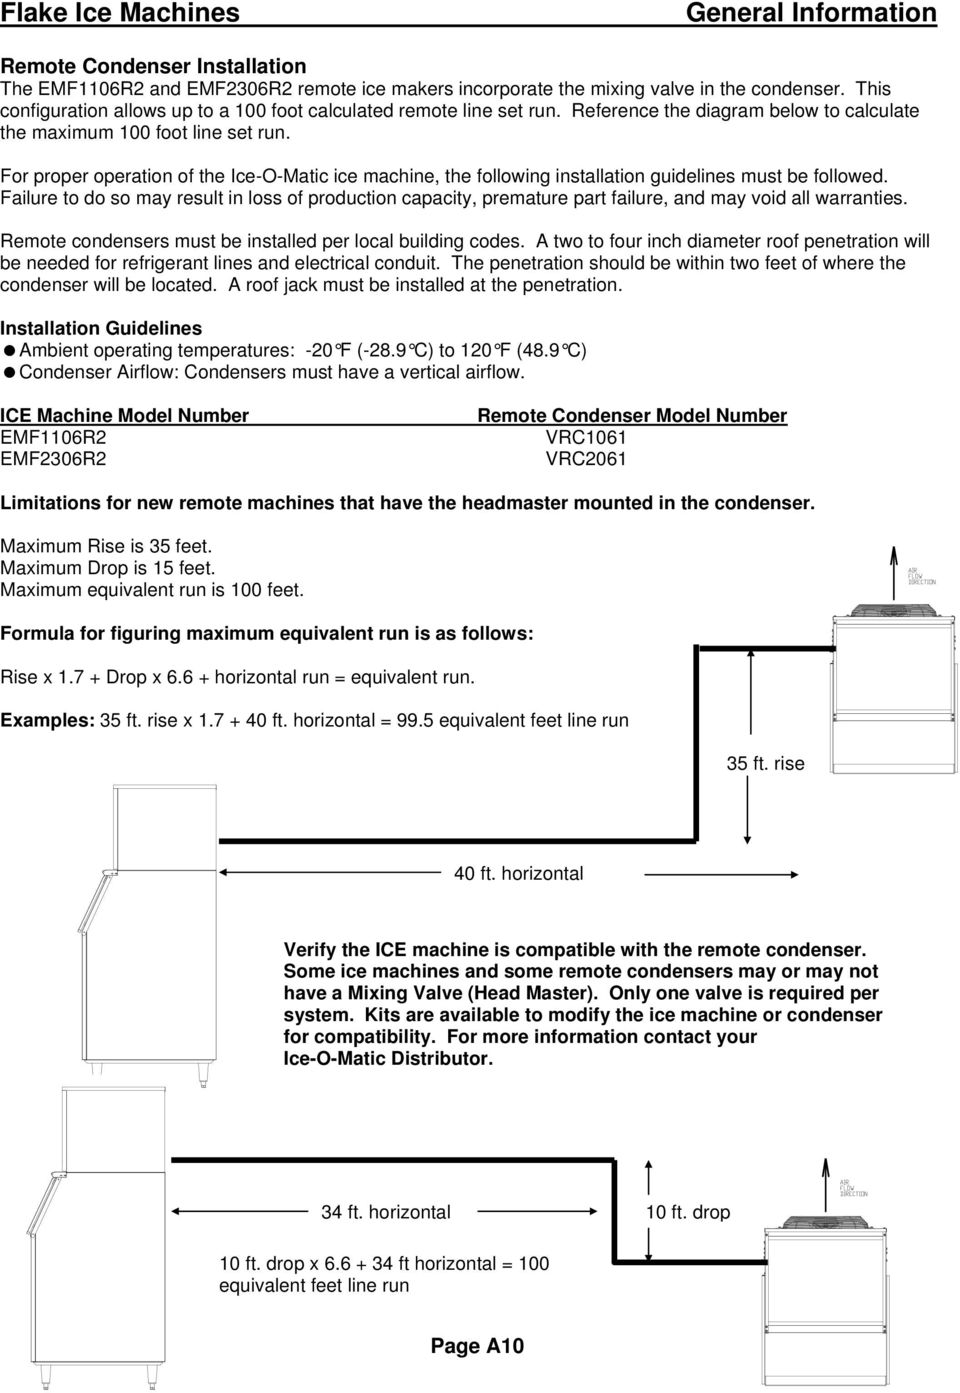 hight resolution of for proper operation of the ice o matic ice machine the following installation